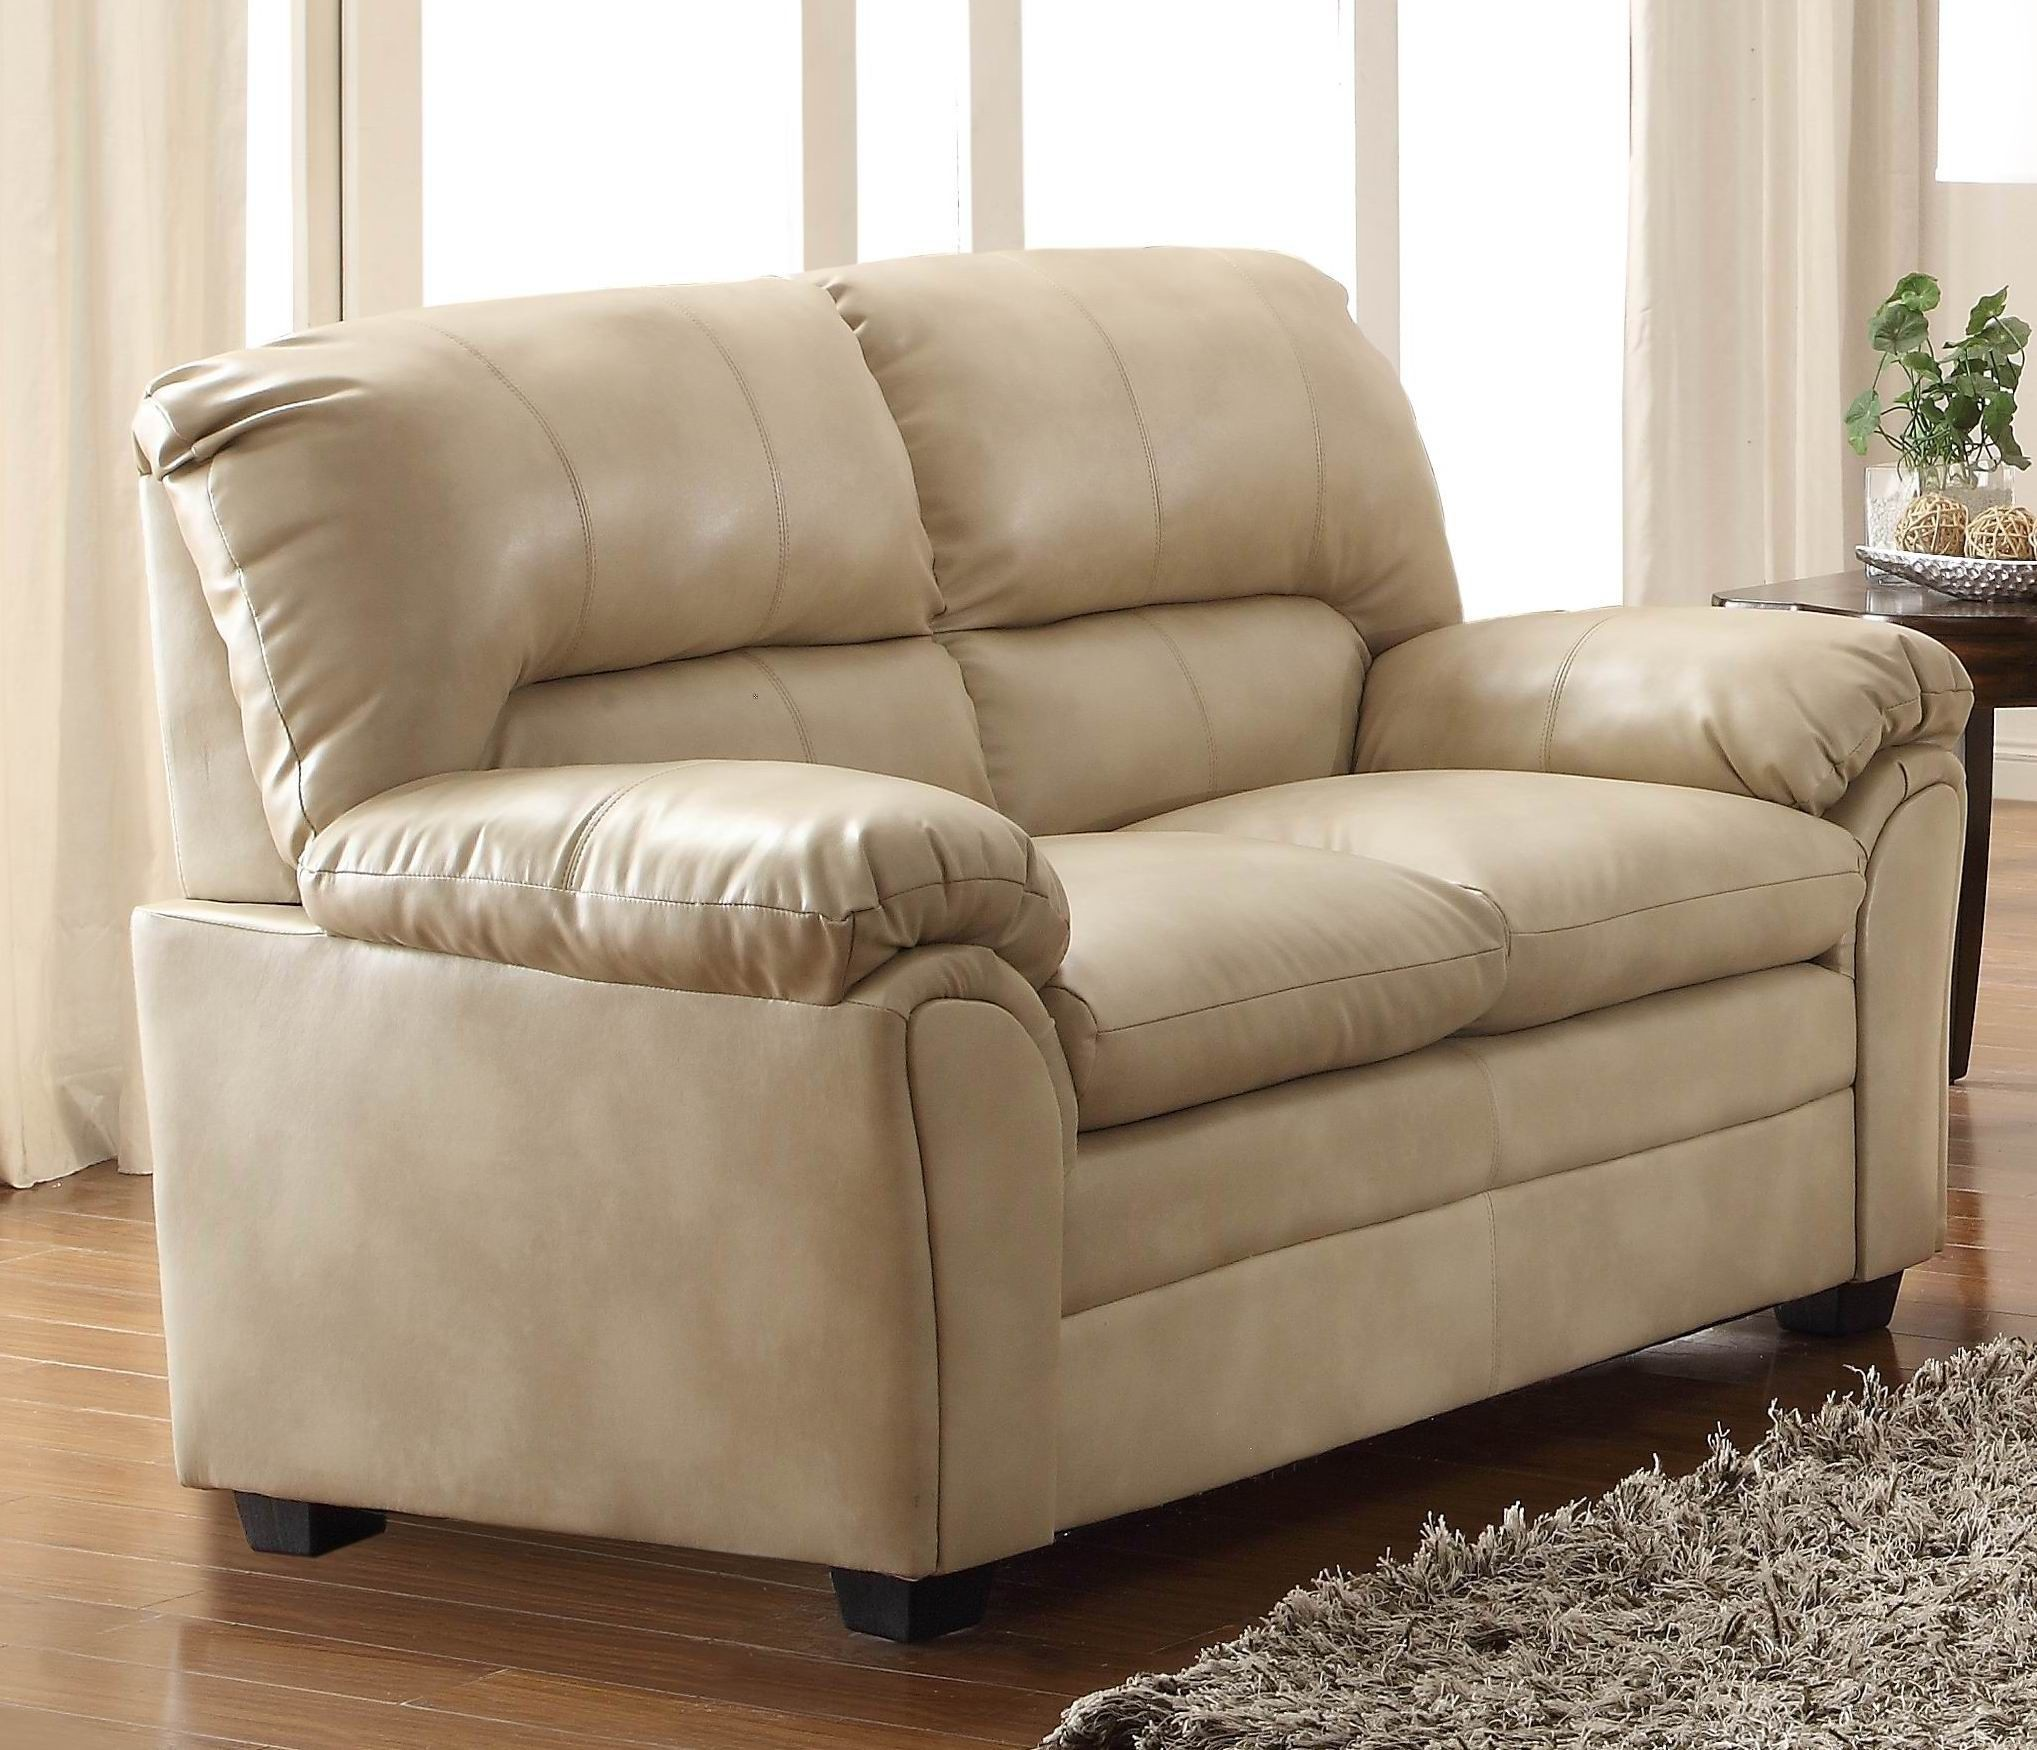 taupe couch living room talon taupe living room set from homelegance 8511tp 3 15370